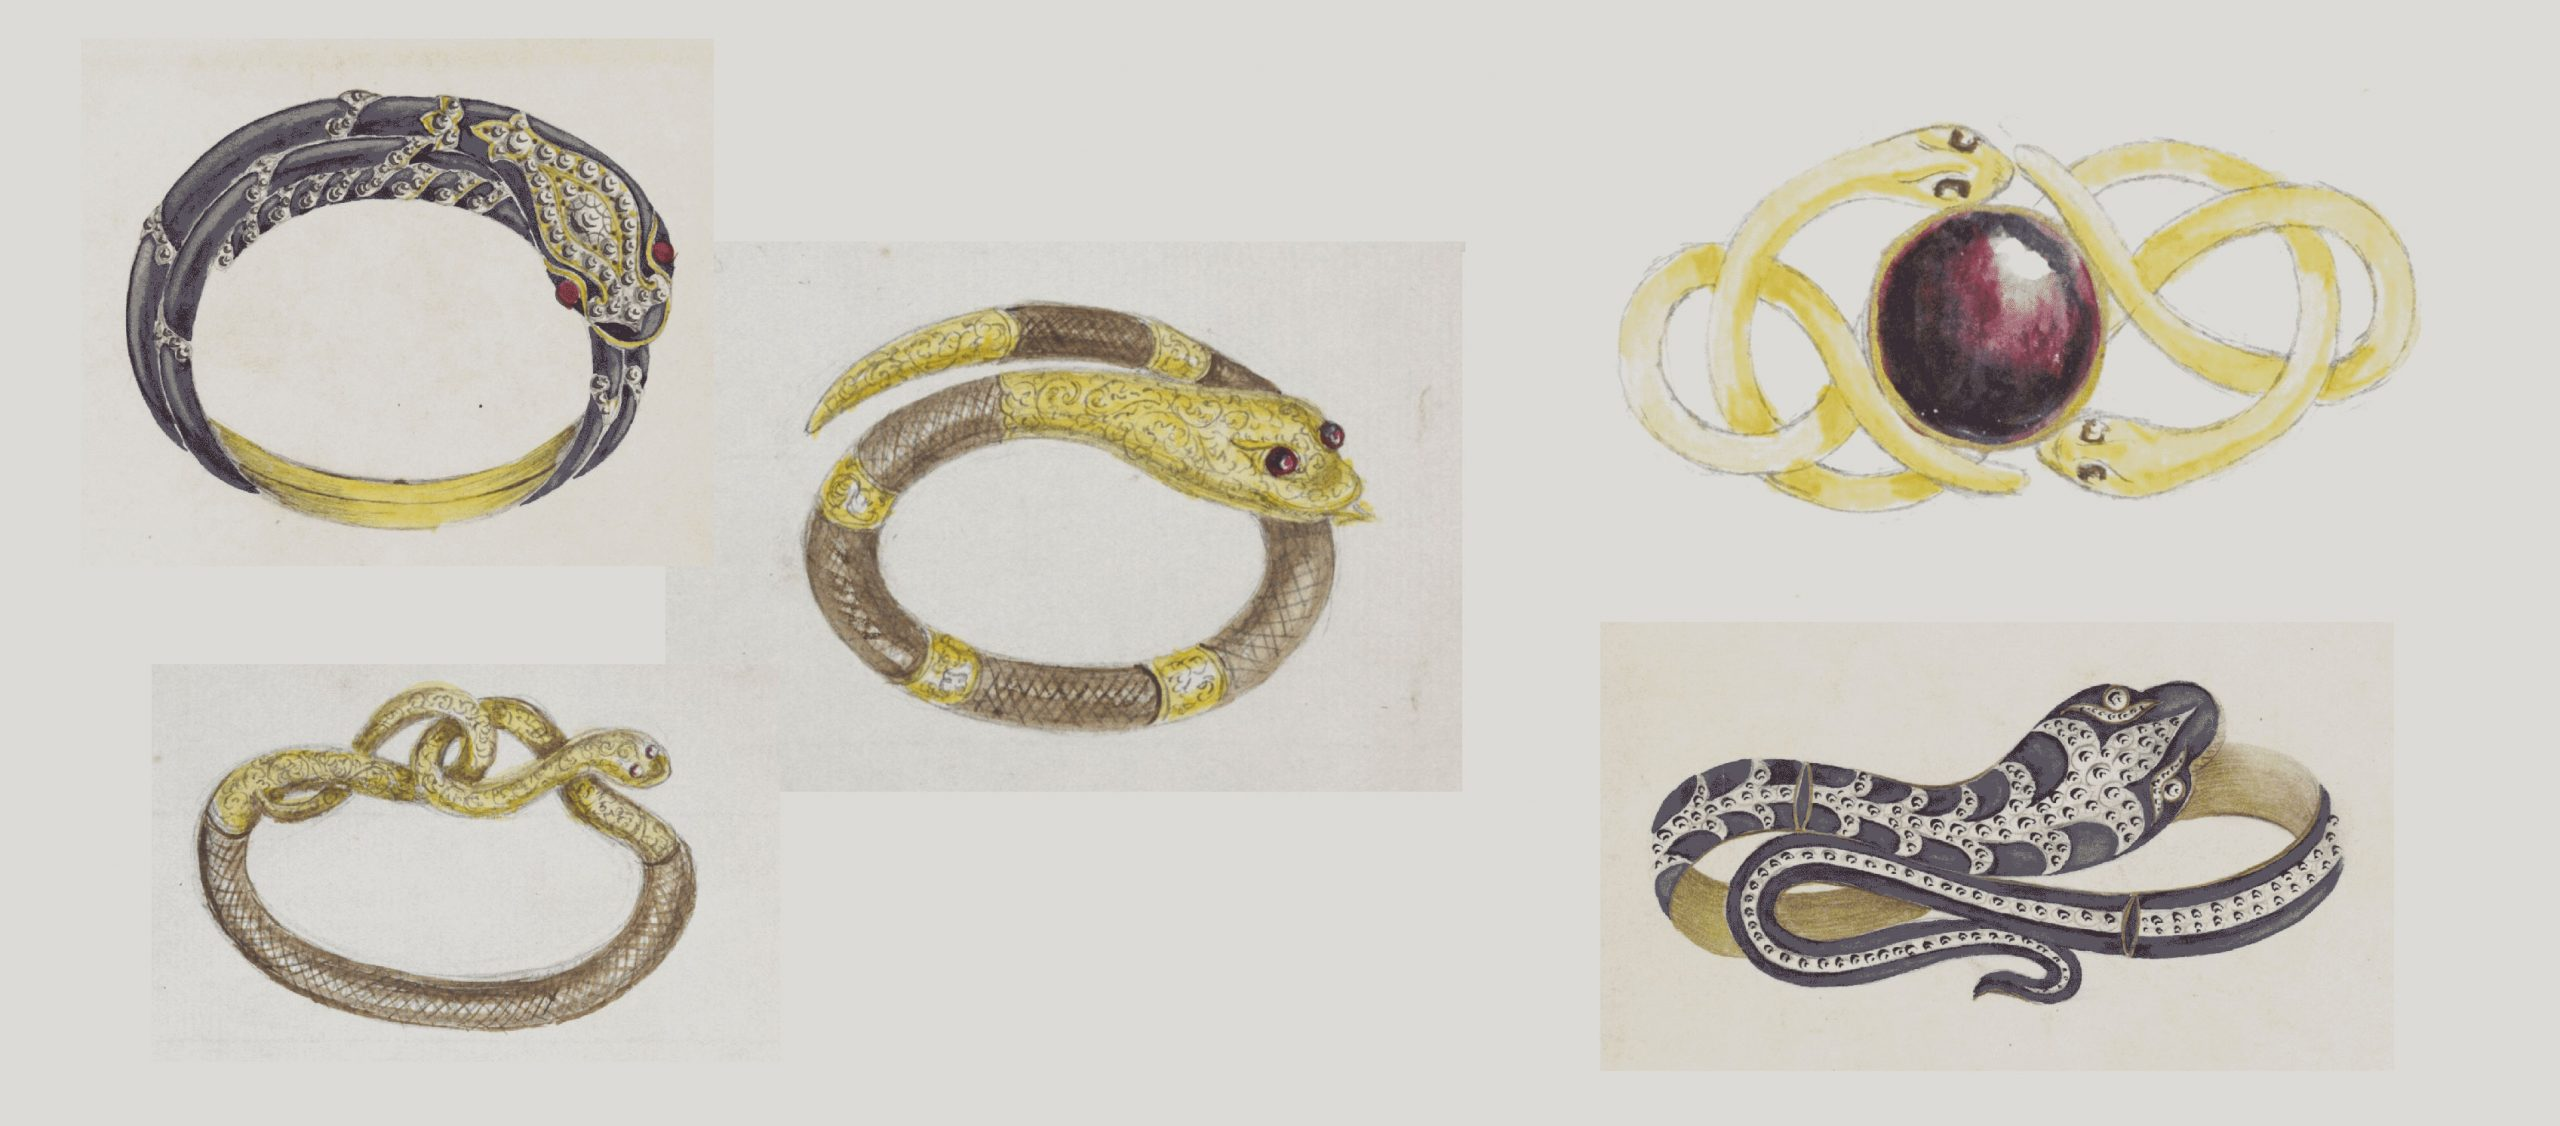 These designs comes from 'The Brogden Album', dating between 1848 and 1884